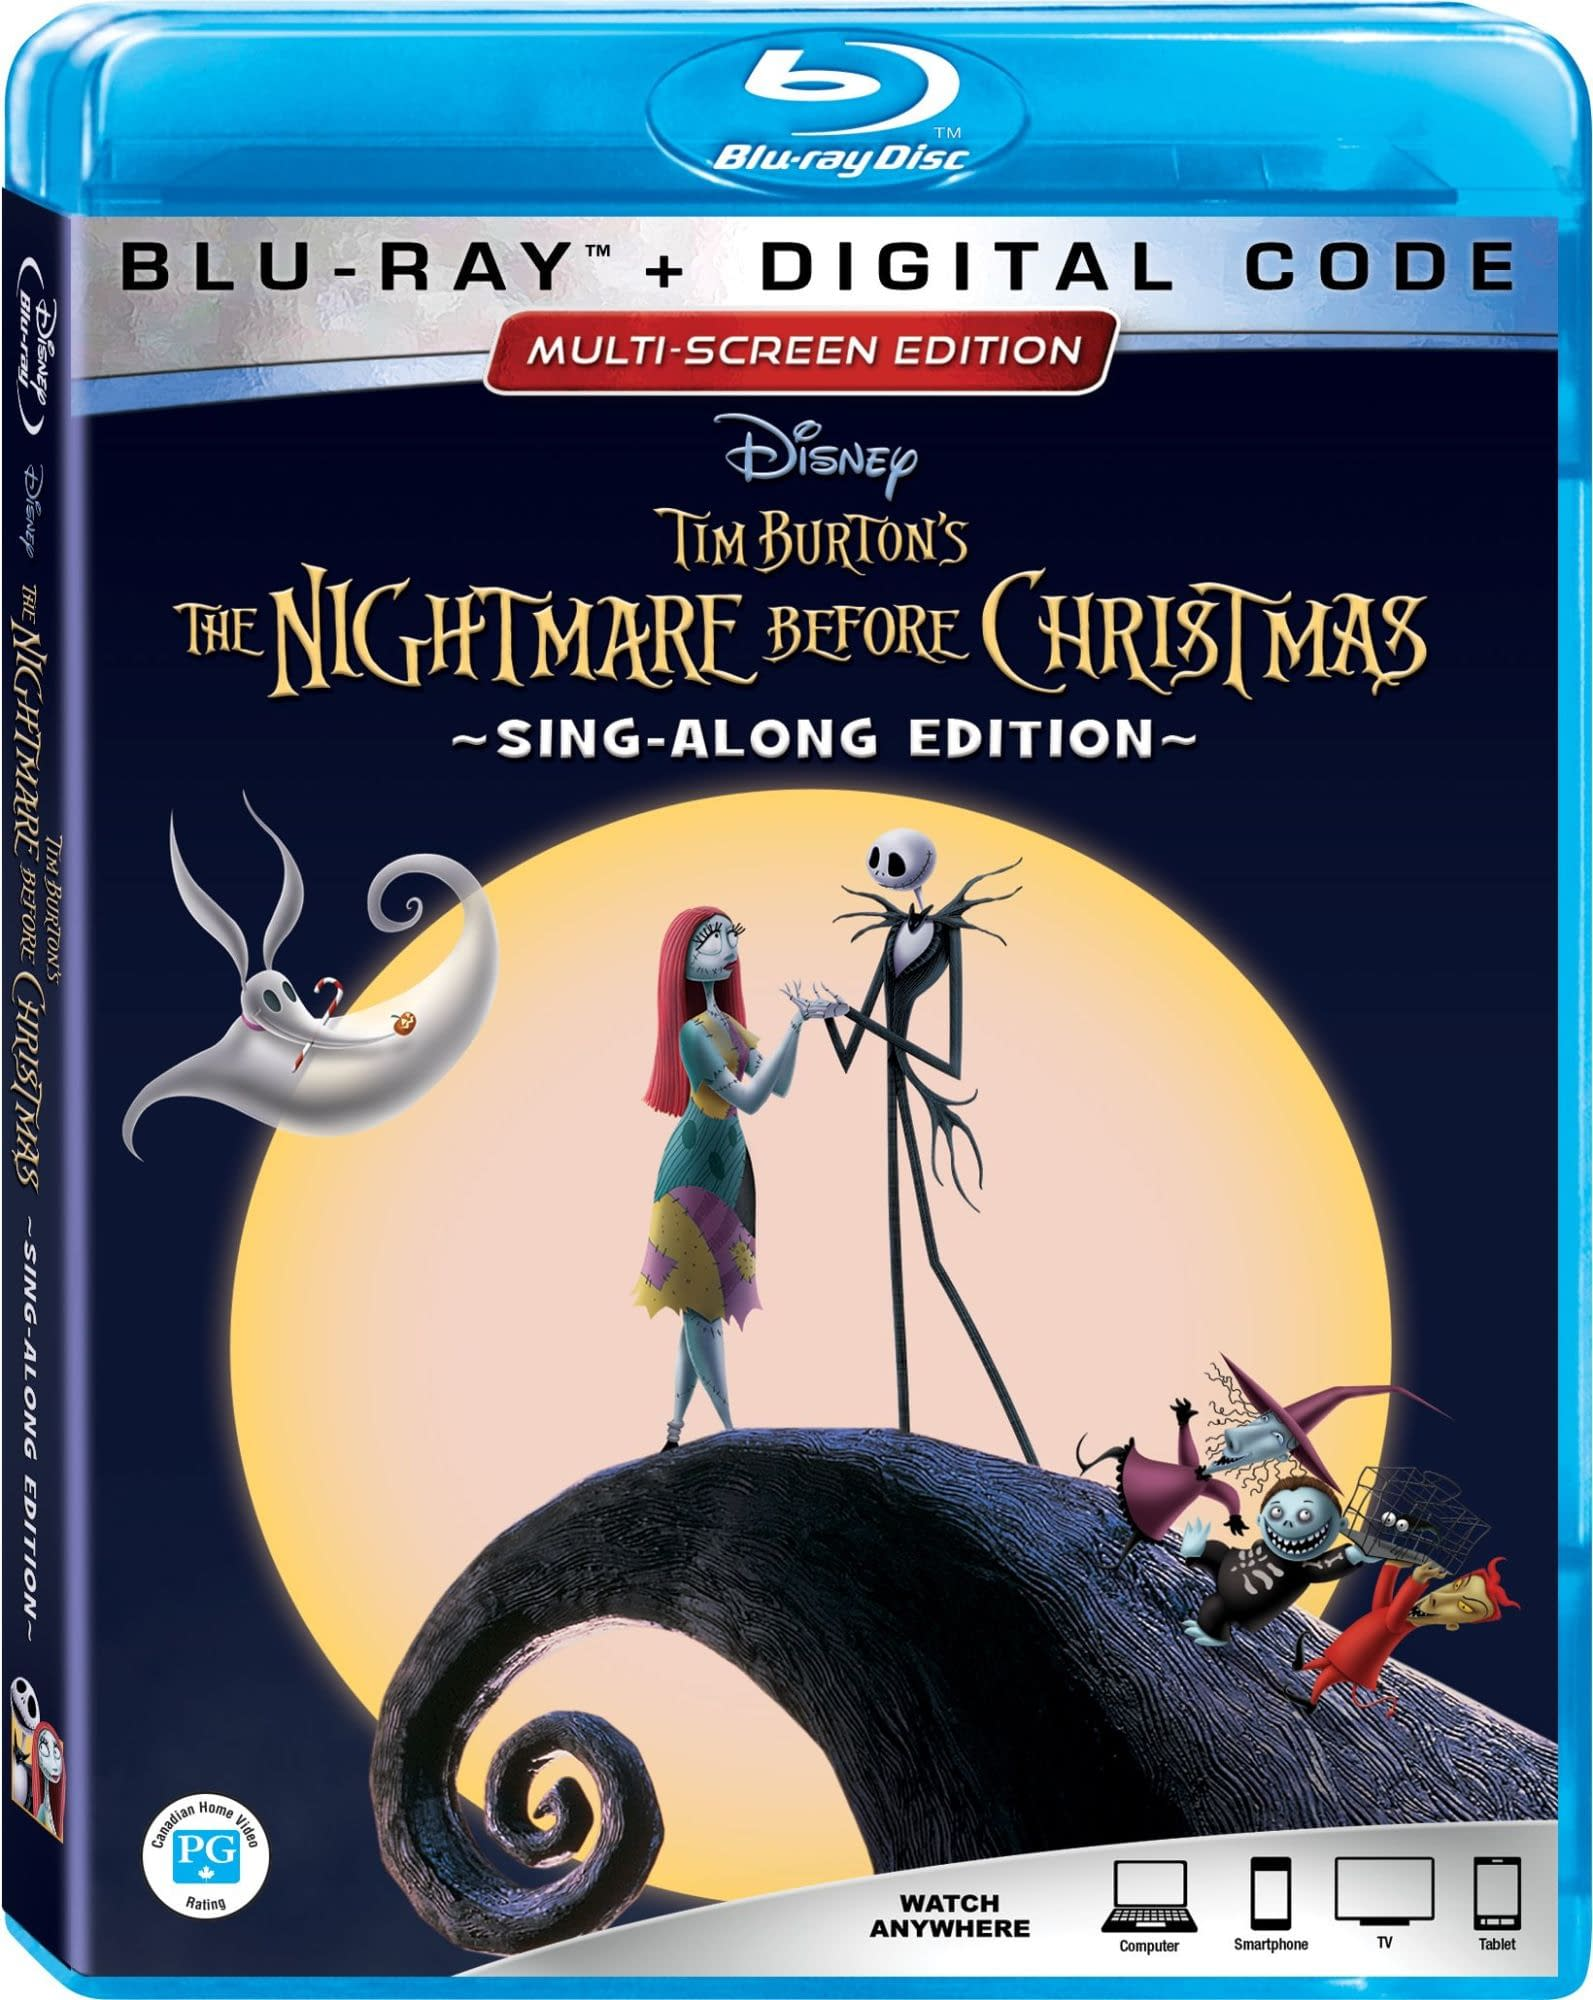 'The Nightmare Before Christmas' 25th Anniversary Blu-ray Details Revealed